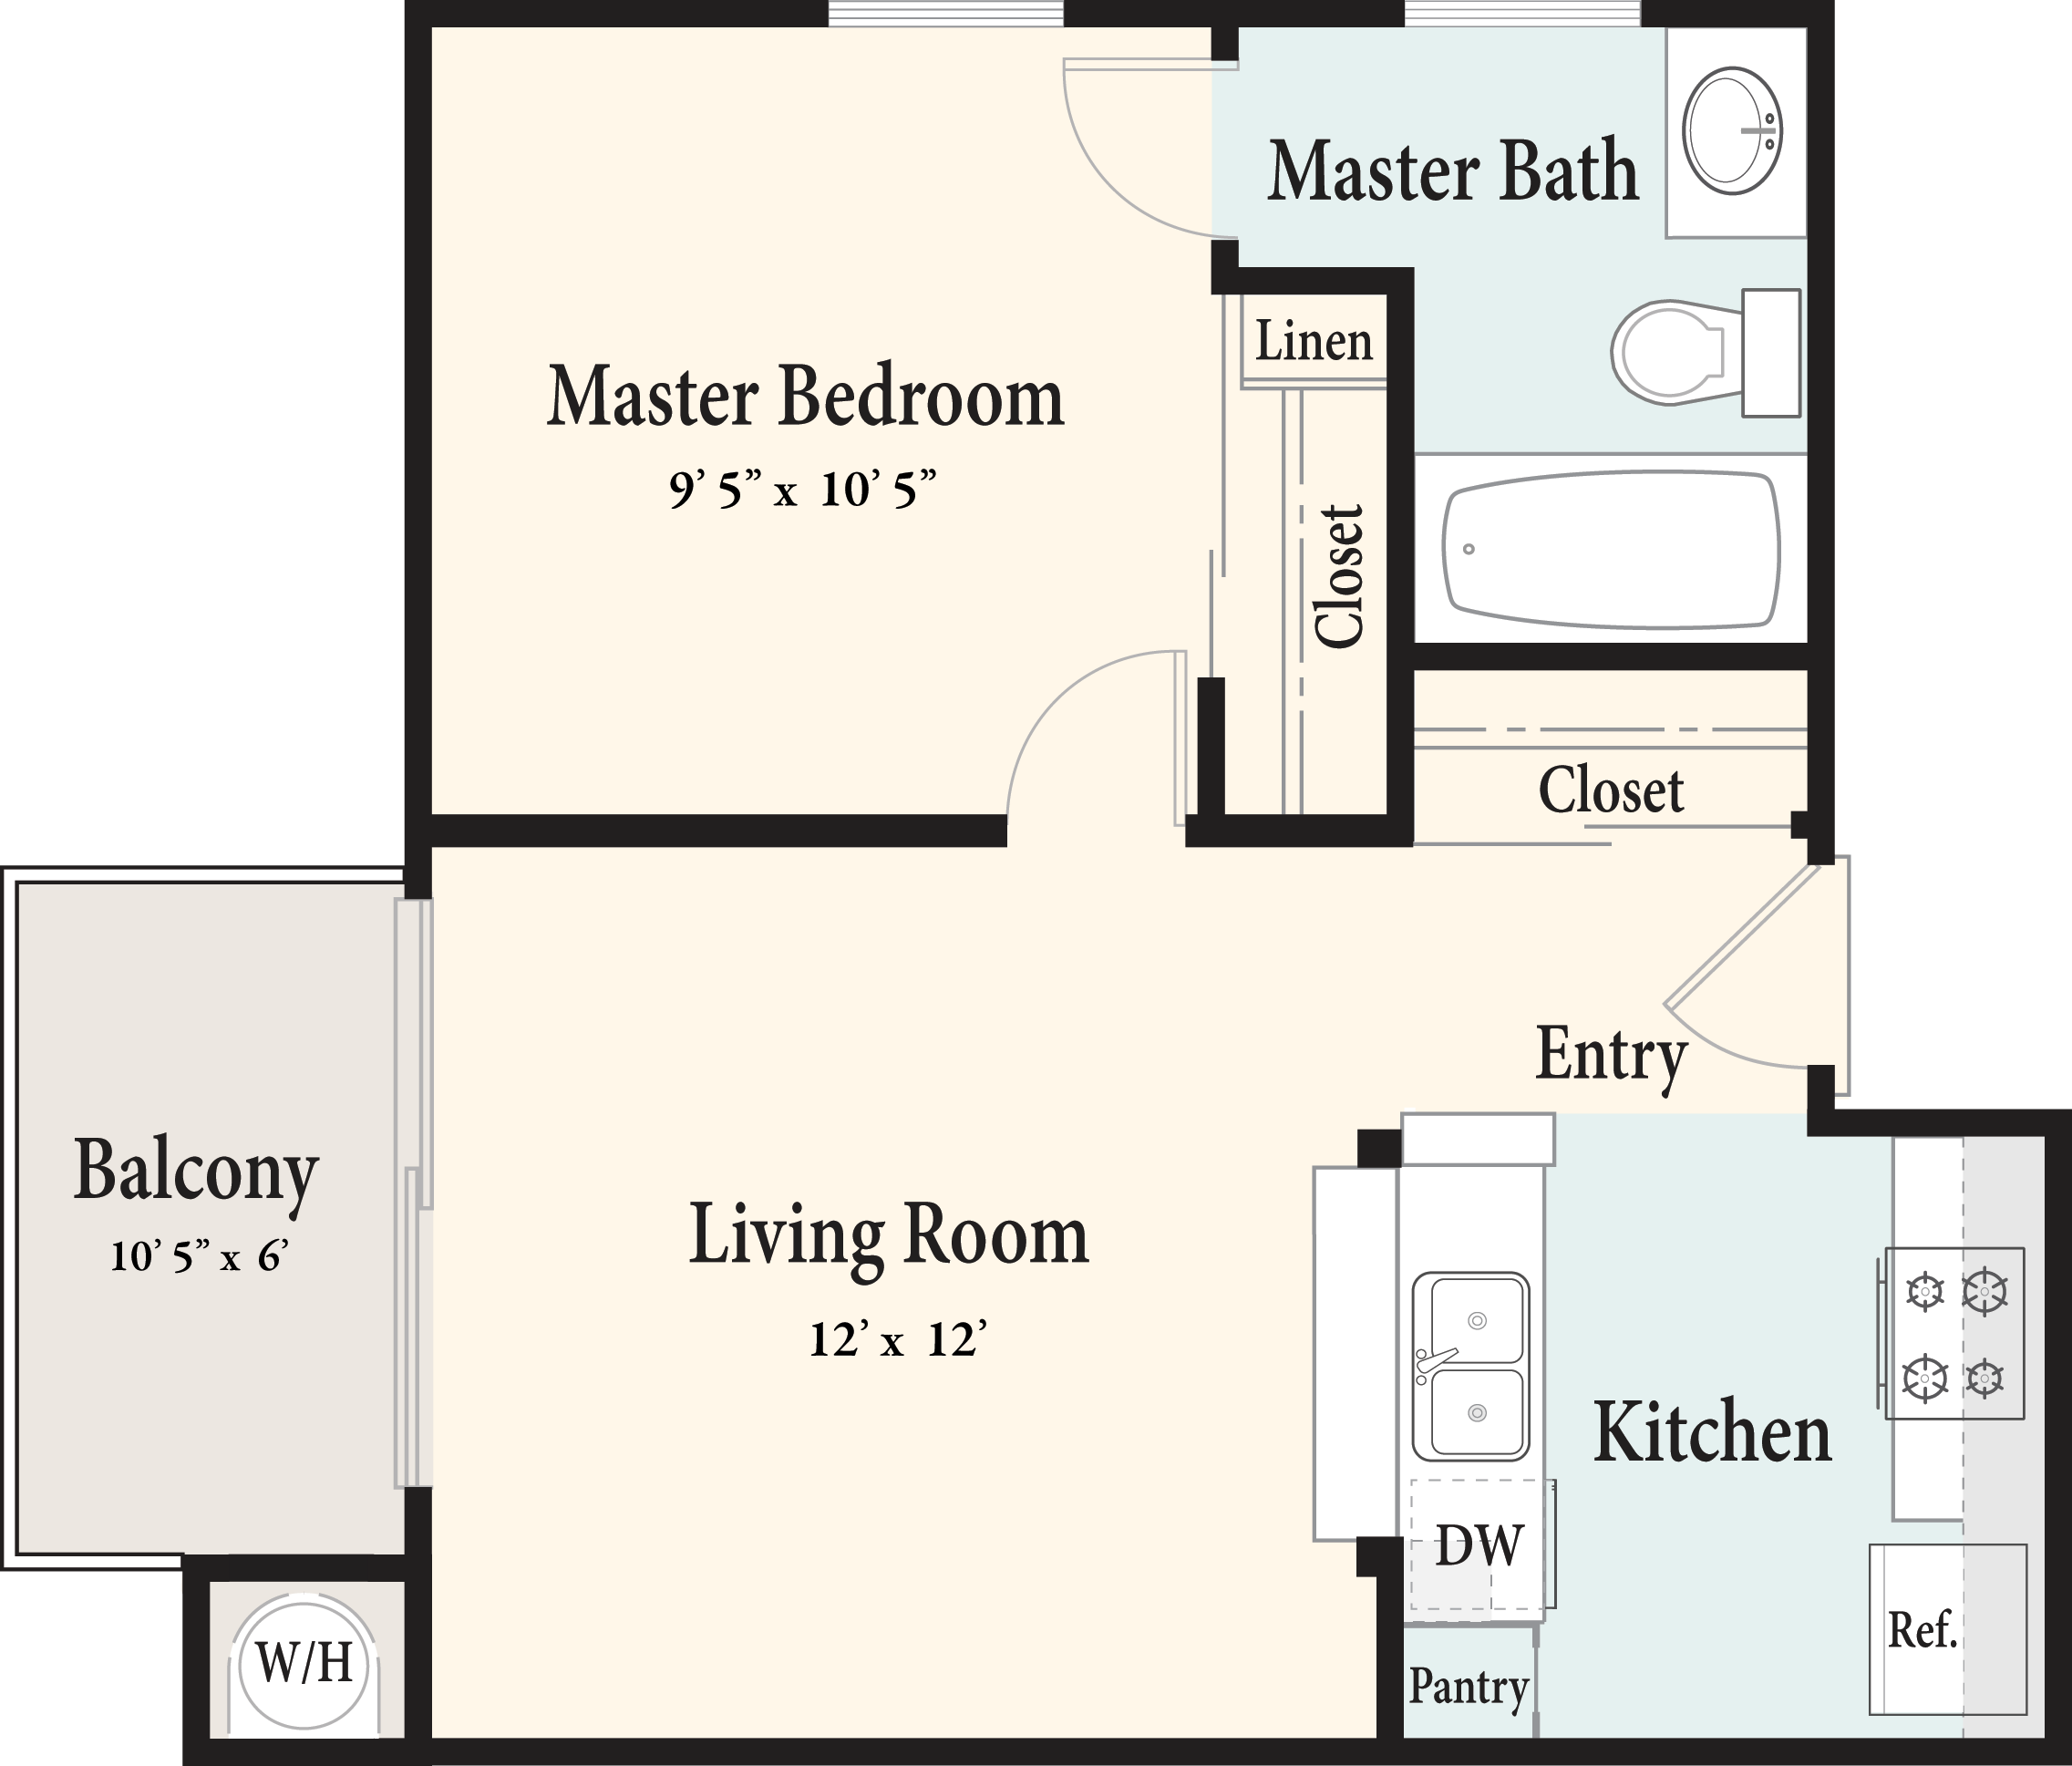 Plan AE 2nd Floor